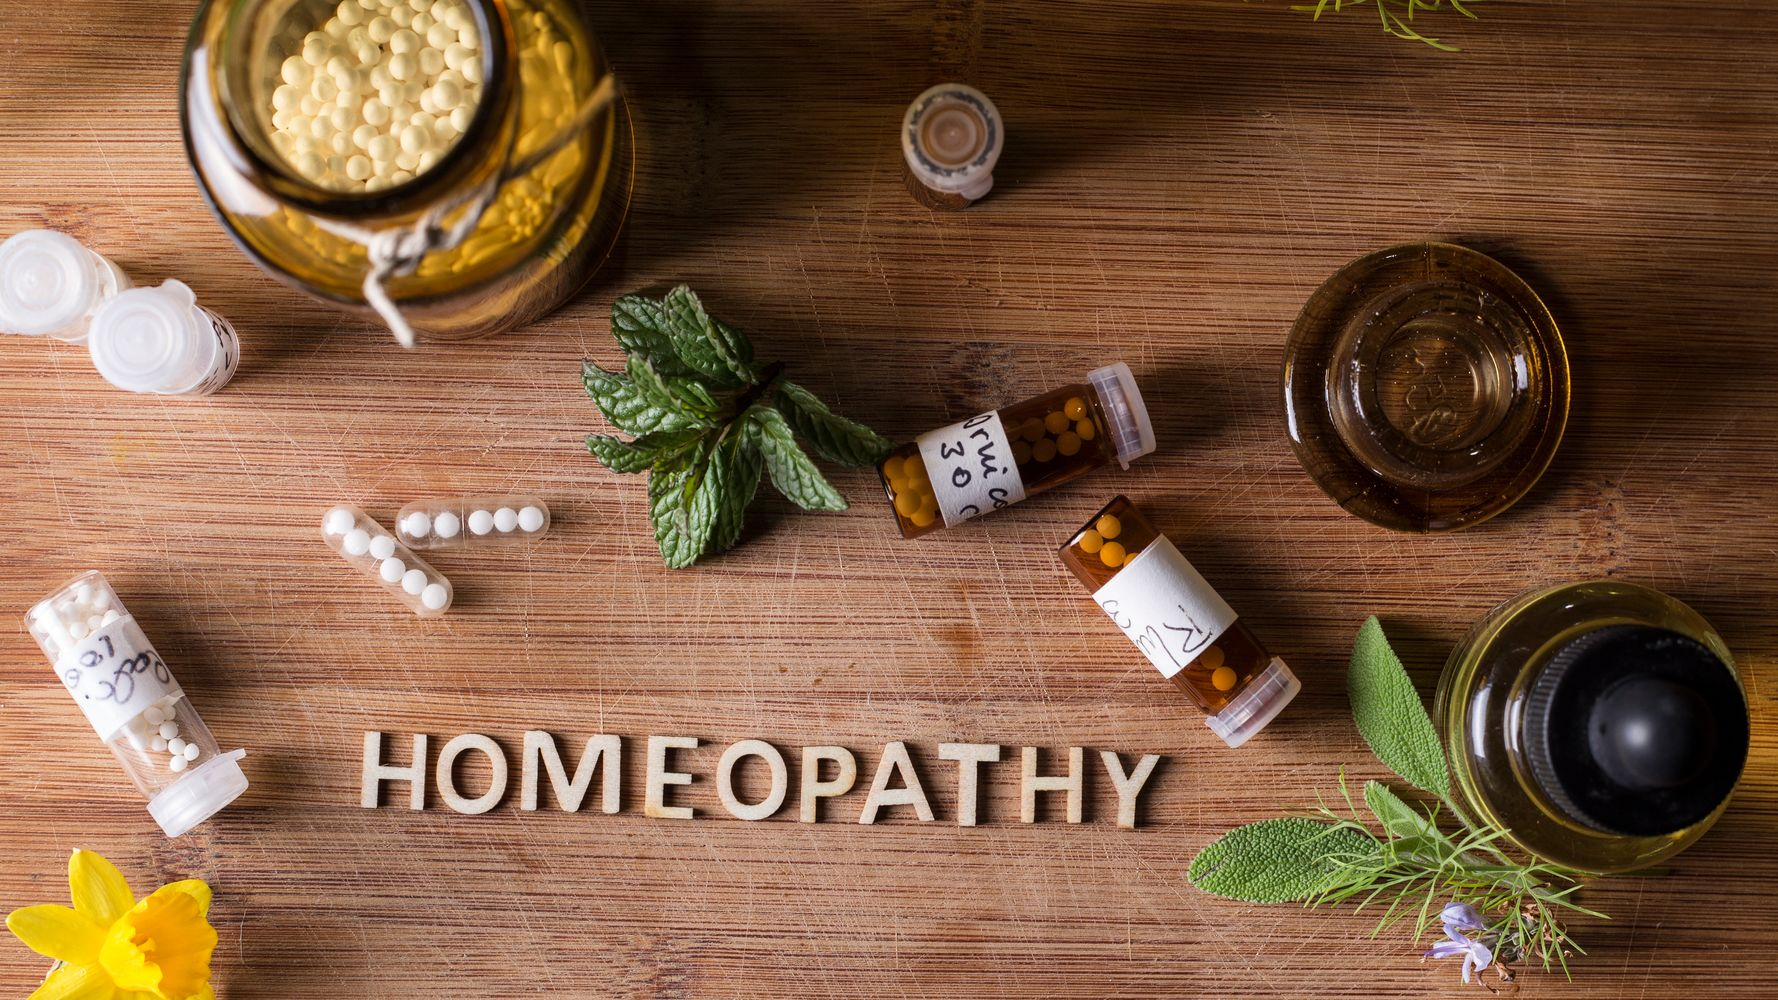 What Is Homeopathy? The Lowdown On The Alternative Medical